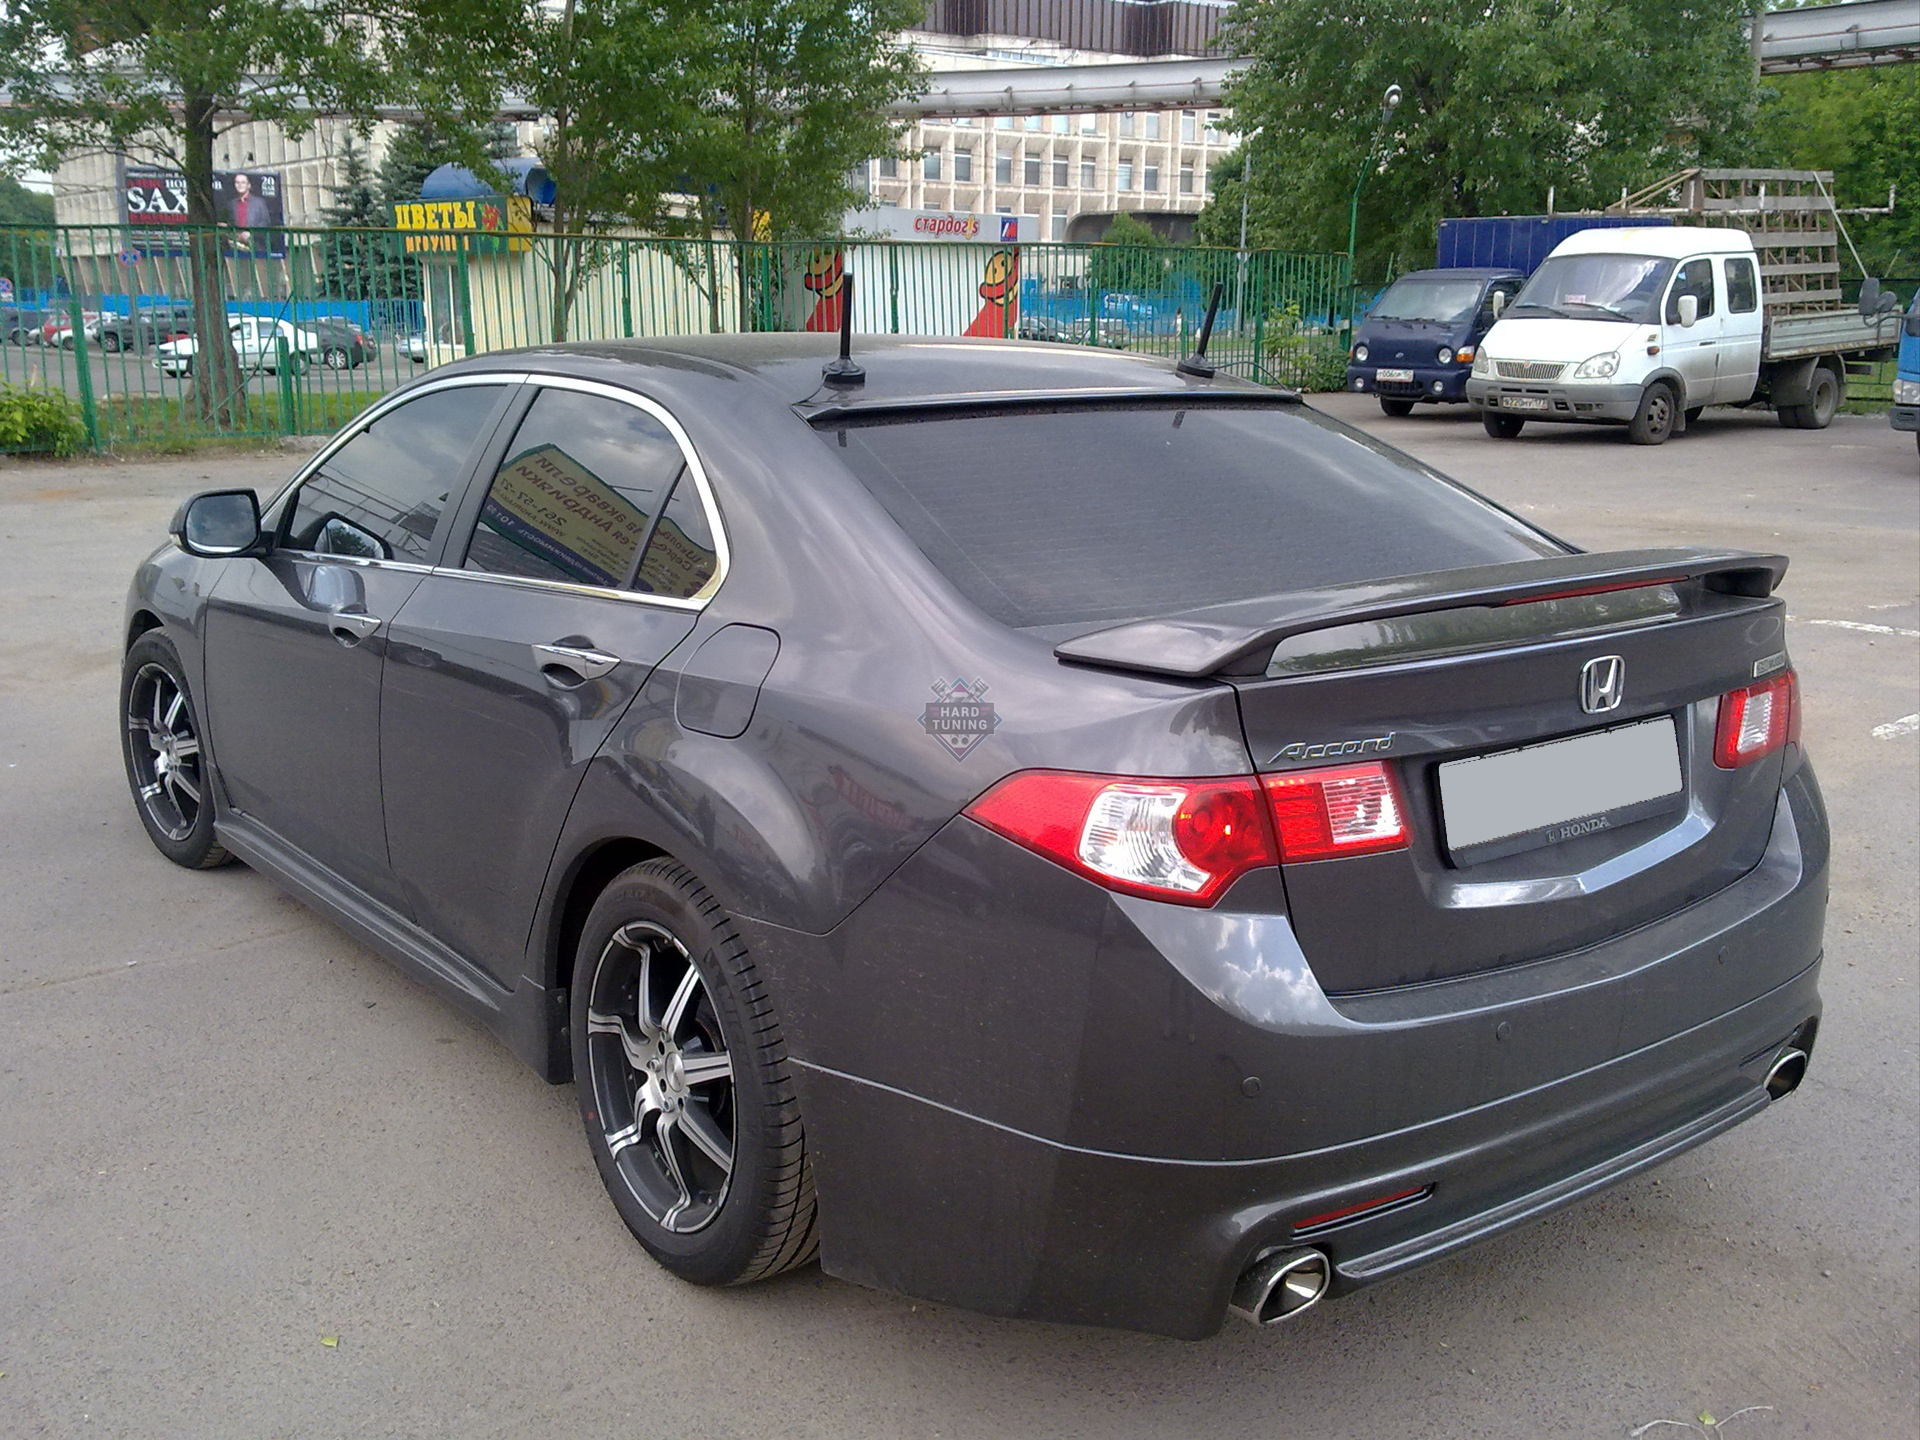 Спойлер MODULO (под стоп-сигнал, в комплект не входит) Honda Accord 8 (2008-2013)